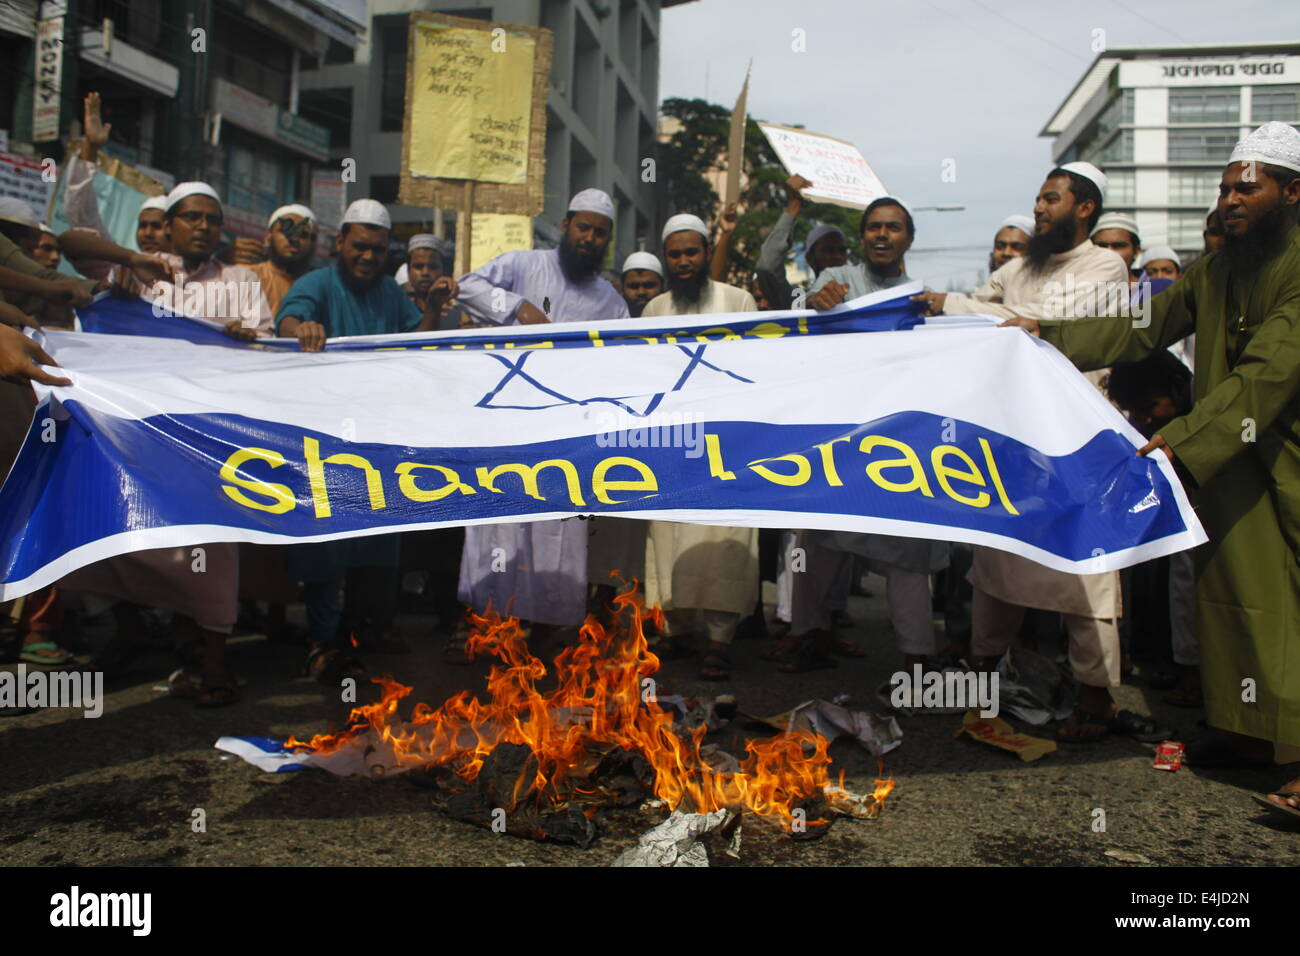 Dhaka, Bangladesh. 13th July, 2014. Bangladeshi Muslims protest  in front of National Press Club by setting fire - Stock Image